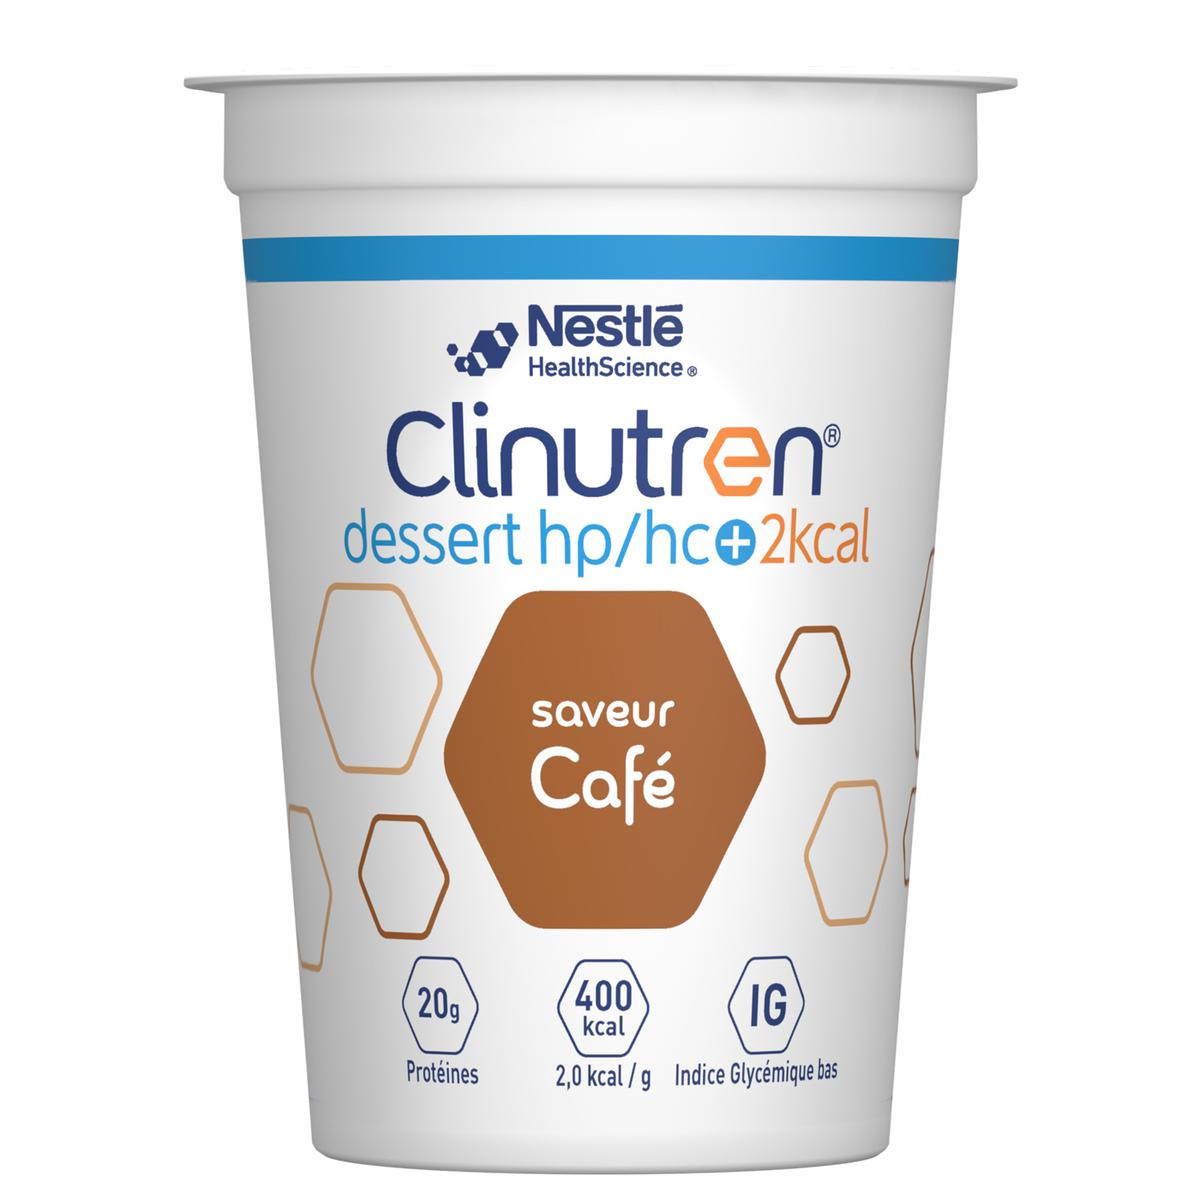 Clinutren Dessert Hp Hc 2 Kcal Cafe 4 X 200 G